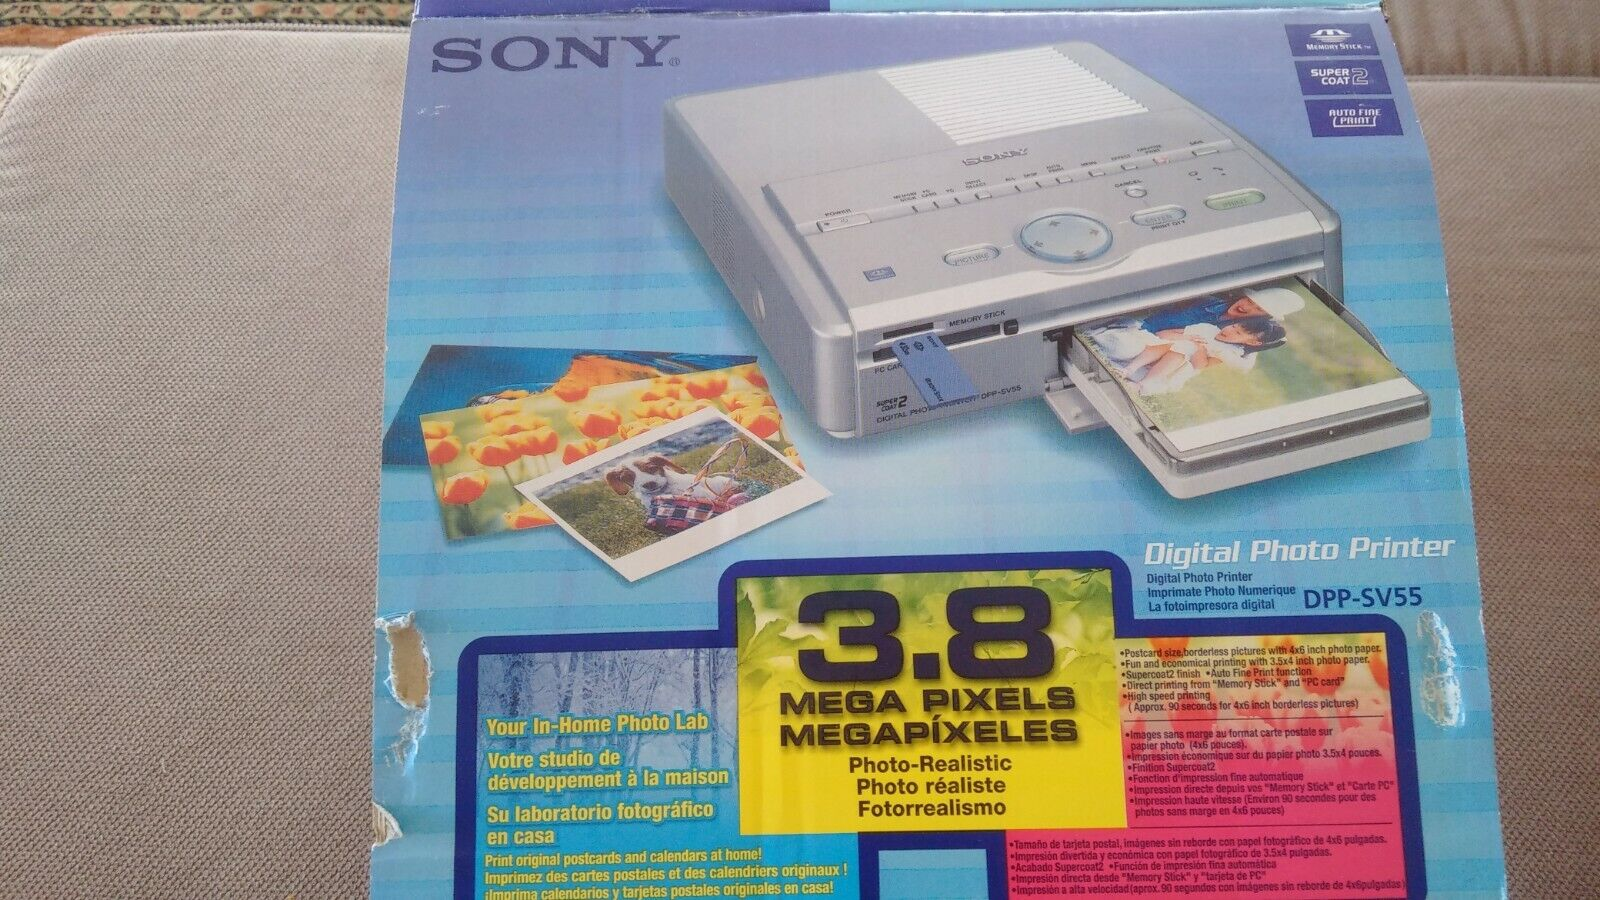 Imprimante sony digital photo printer dpp-sv55